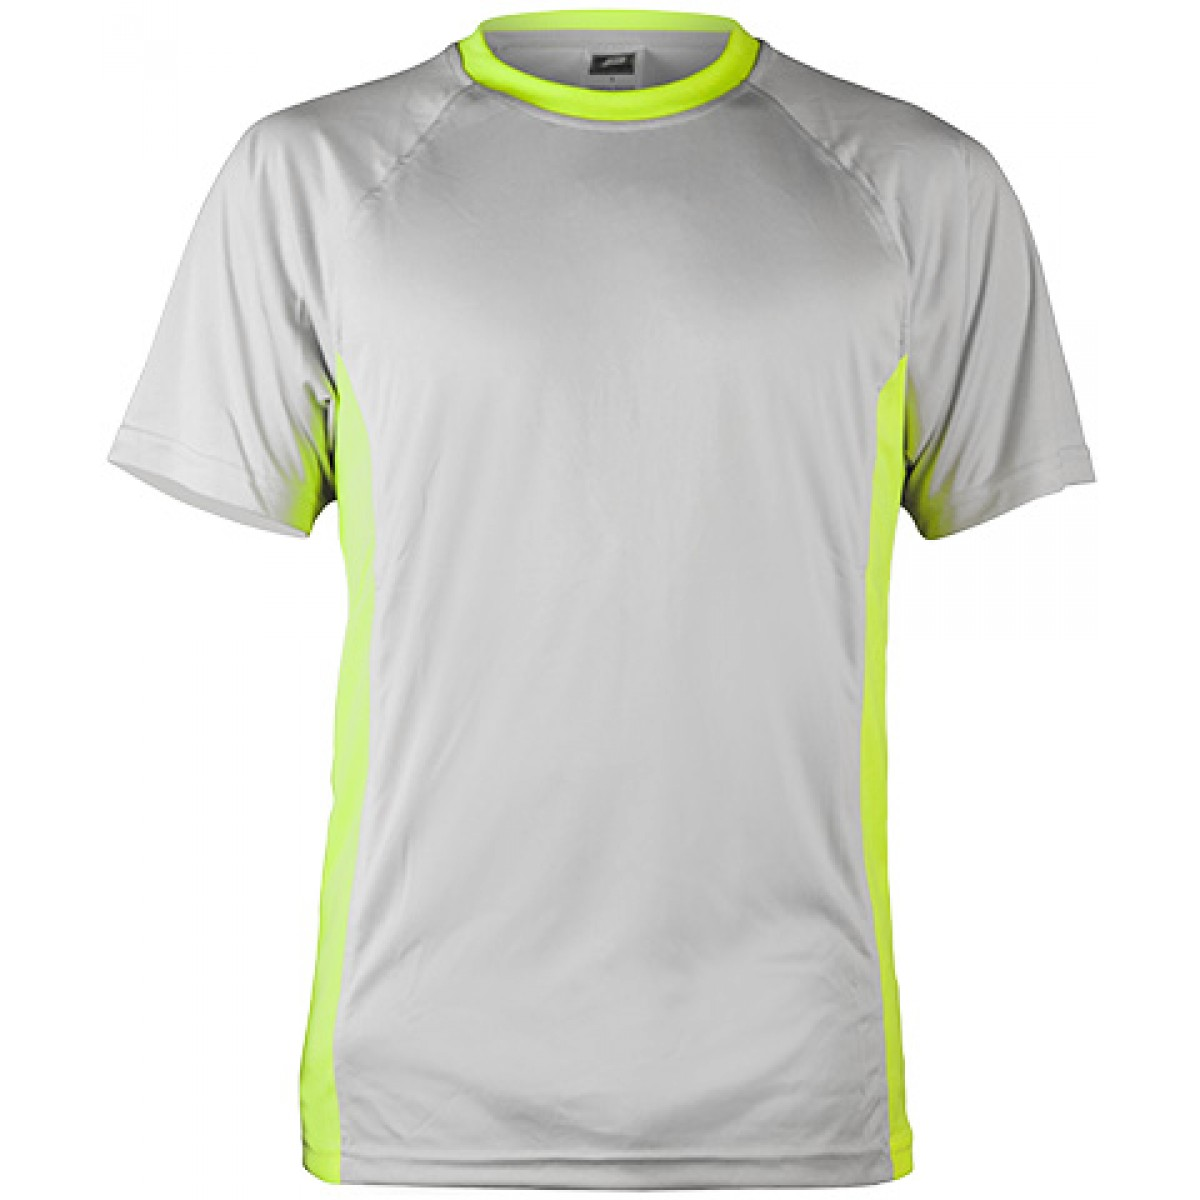 Short Sleeve Performance Fit with Flat-back Mesh Side Insert-Gray/Green-L